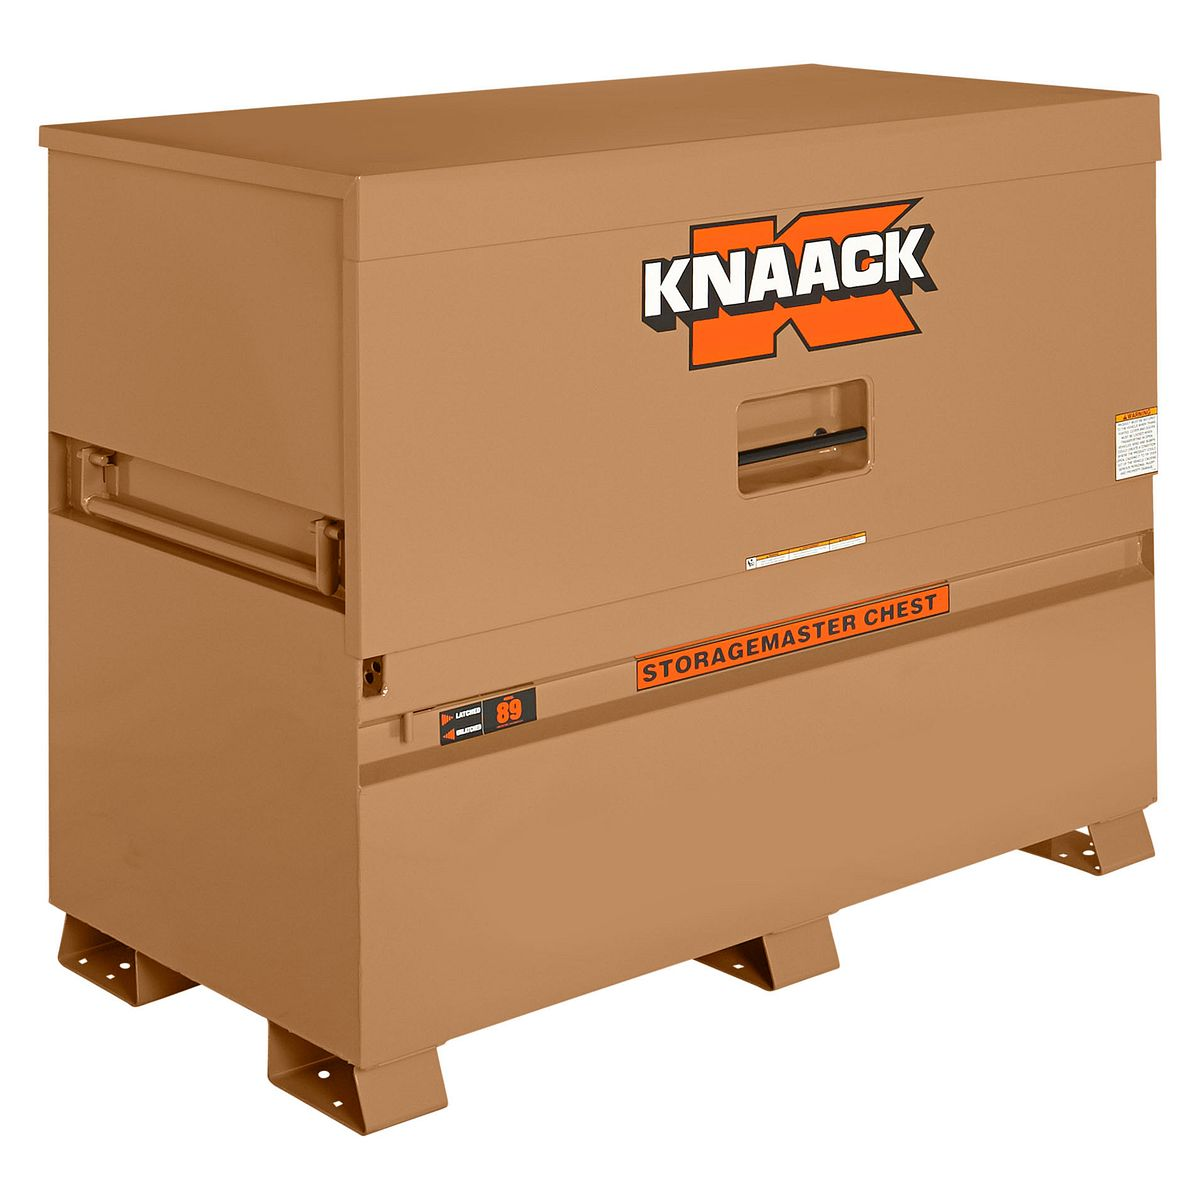 Model 89 STORAGEMASTER® Piano Box 47.8 cu ft  sc 1 st  Knaack & KNAACK Jobsite Storage